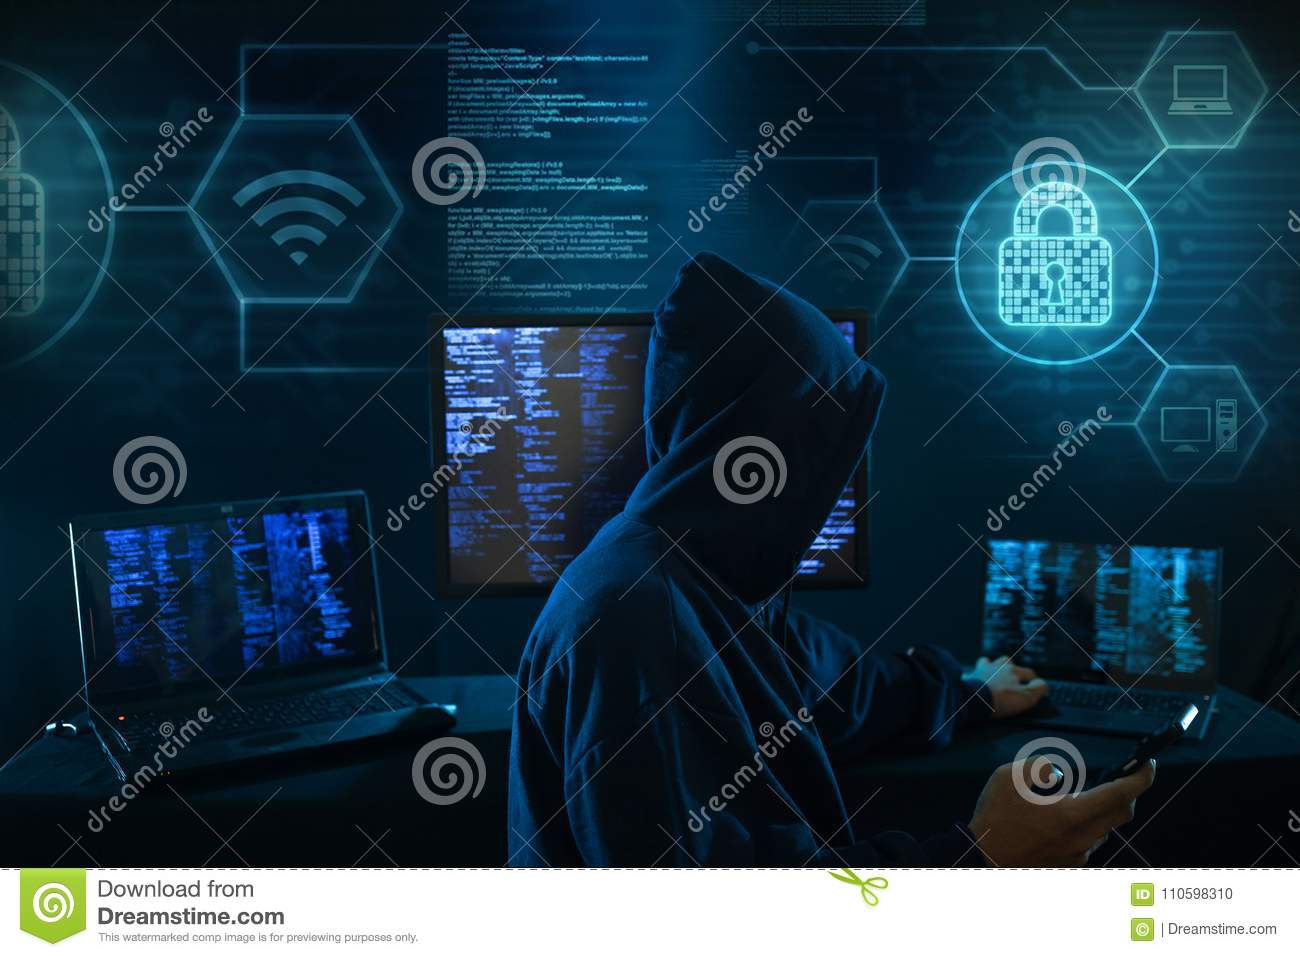 Computer hacker - Internet crime concept with digital interface around